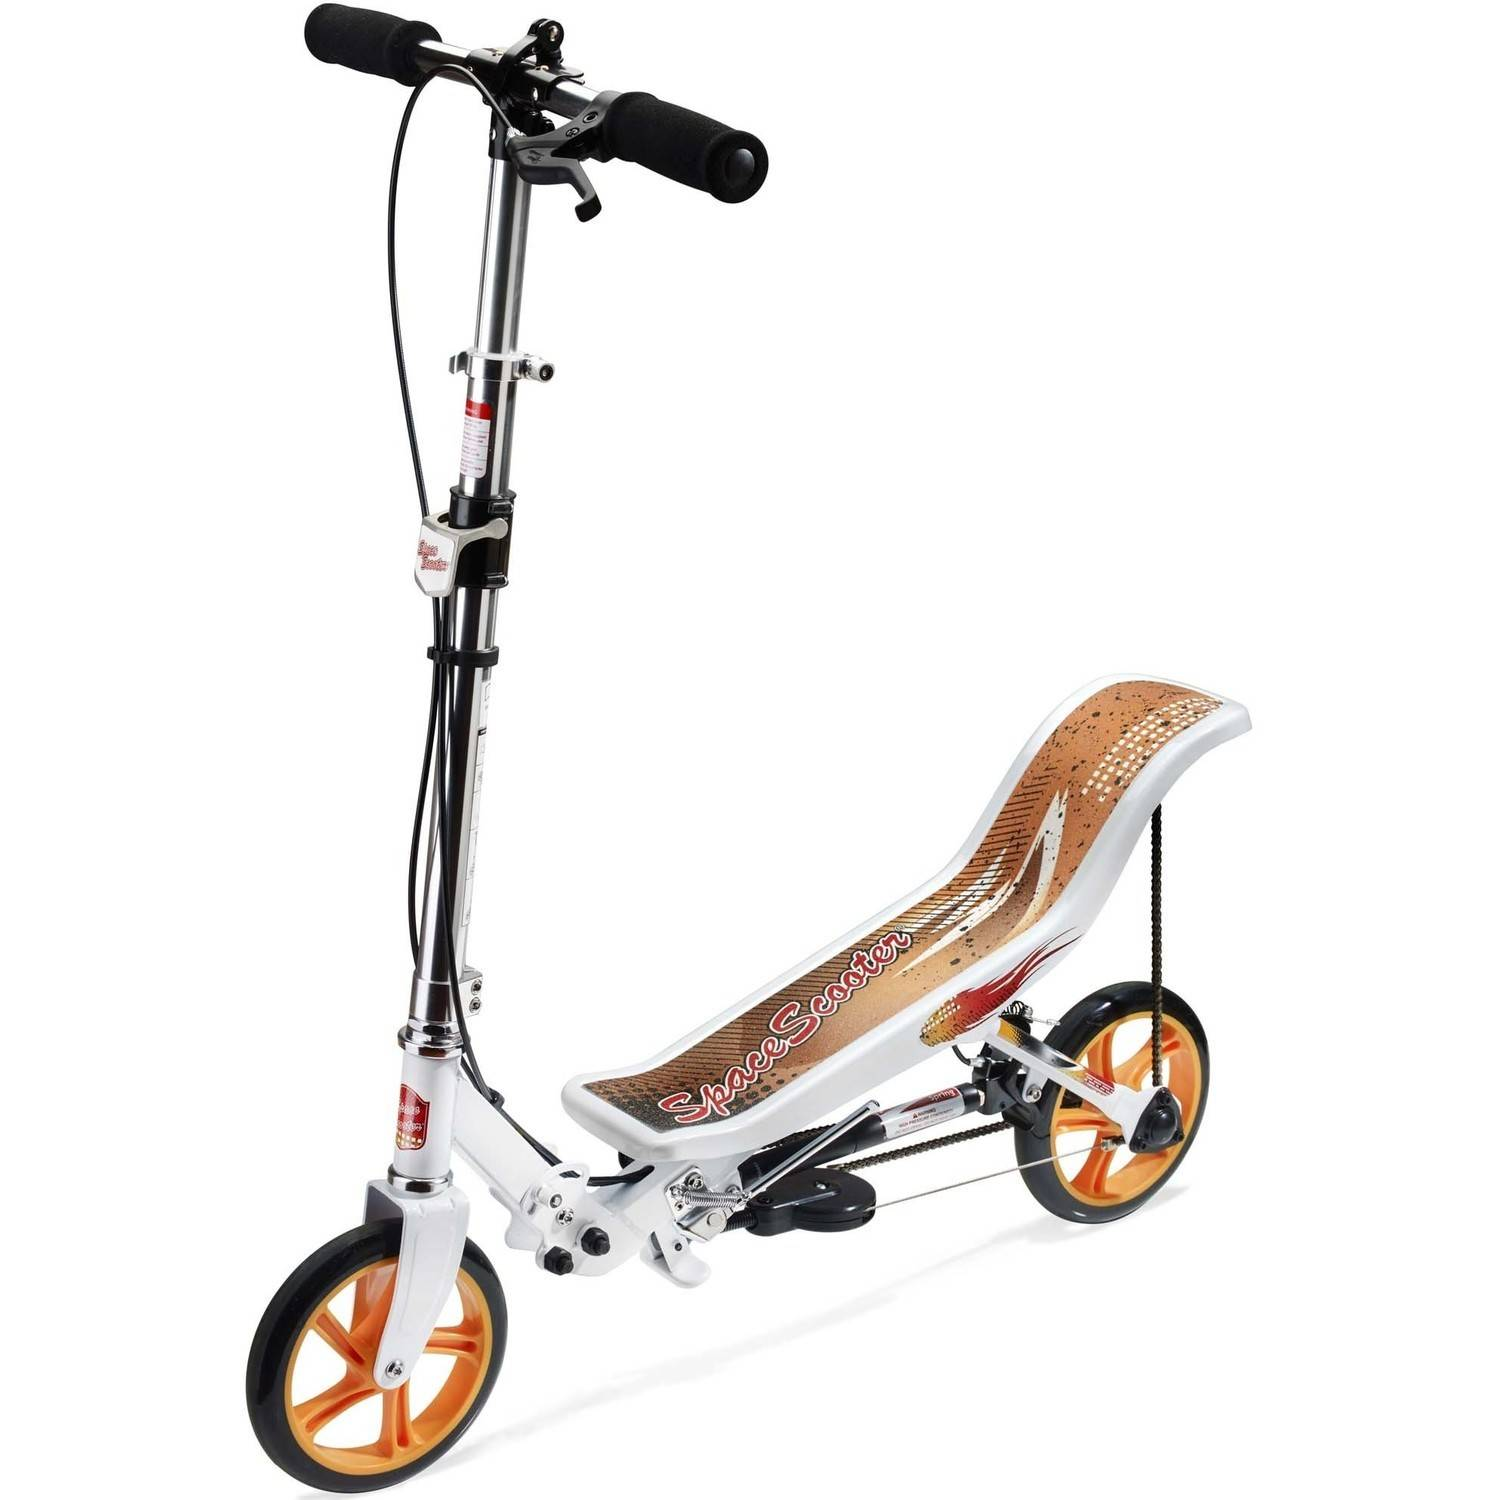 Space Scooter X580, Regular, White by Space Scooter